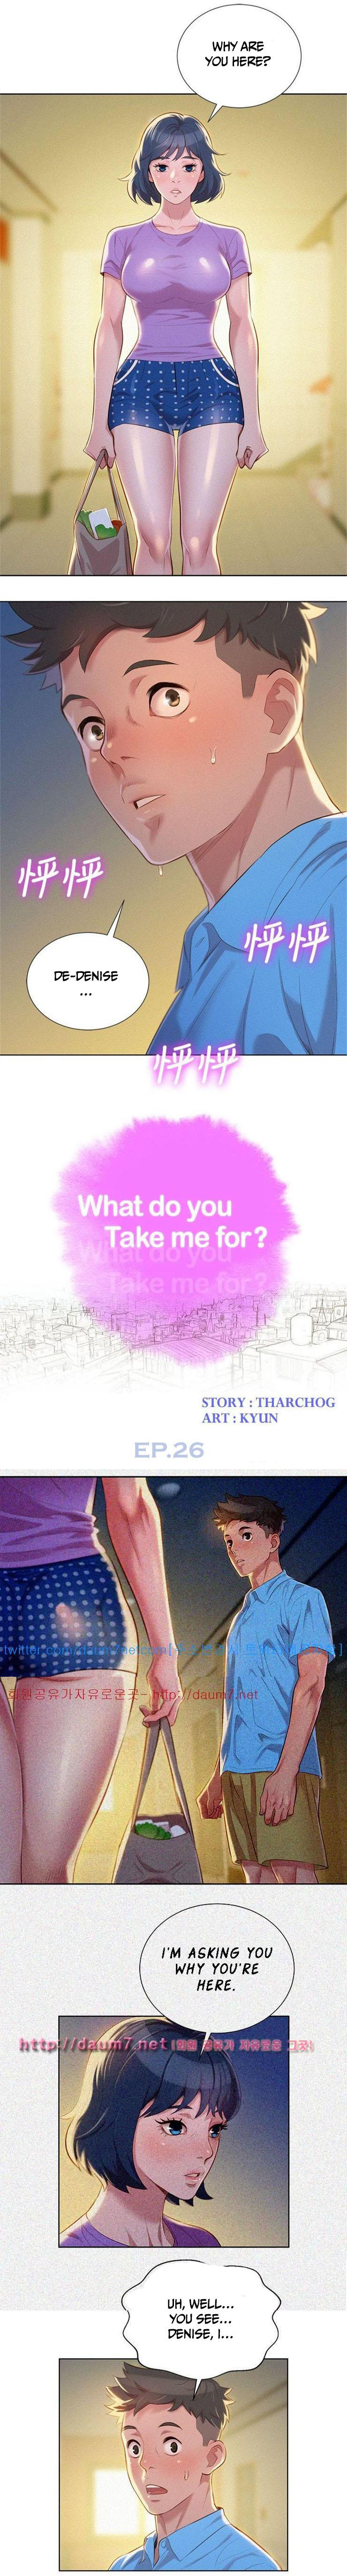 What do you Take me For? Ch.40/? 297